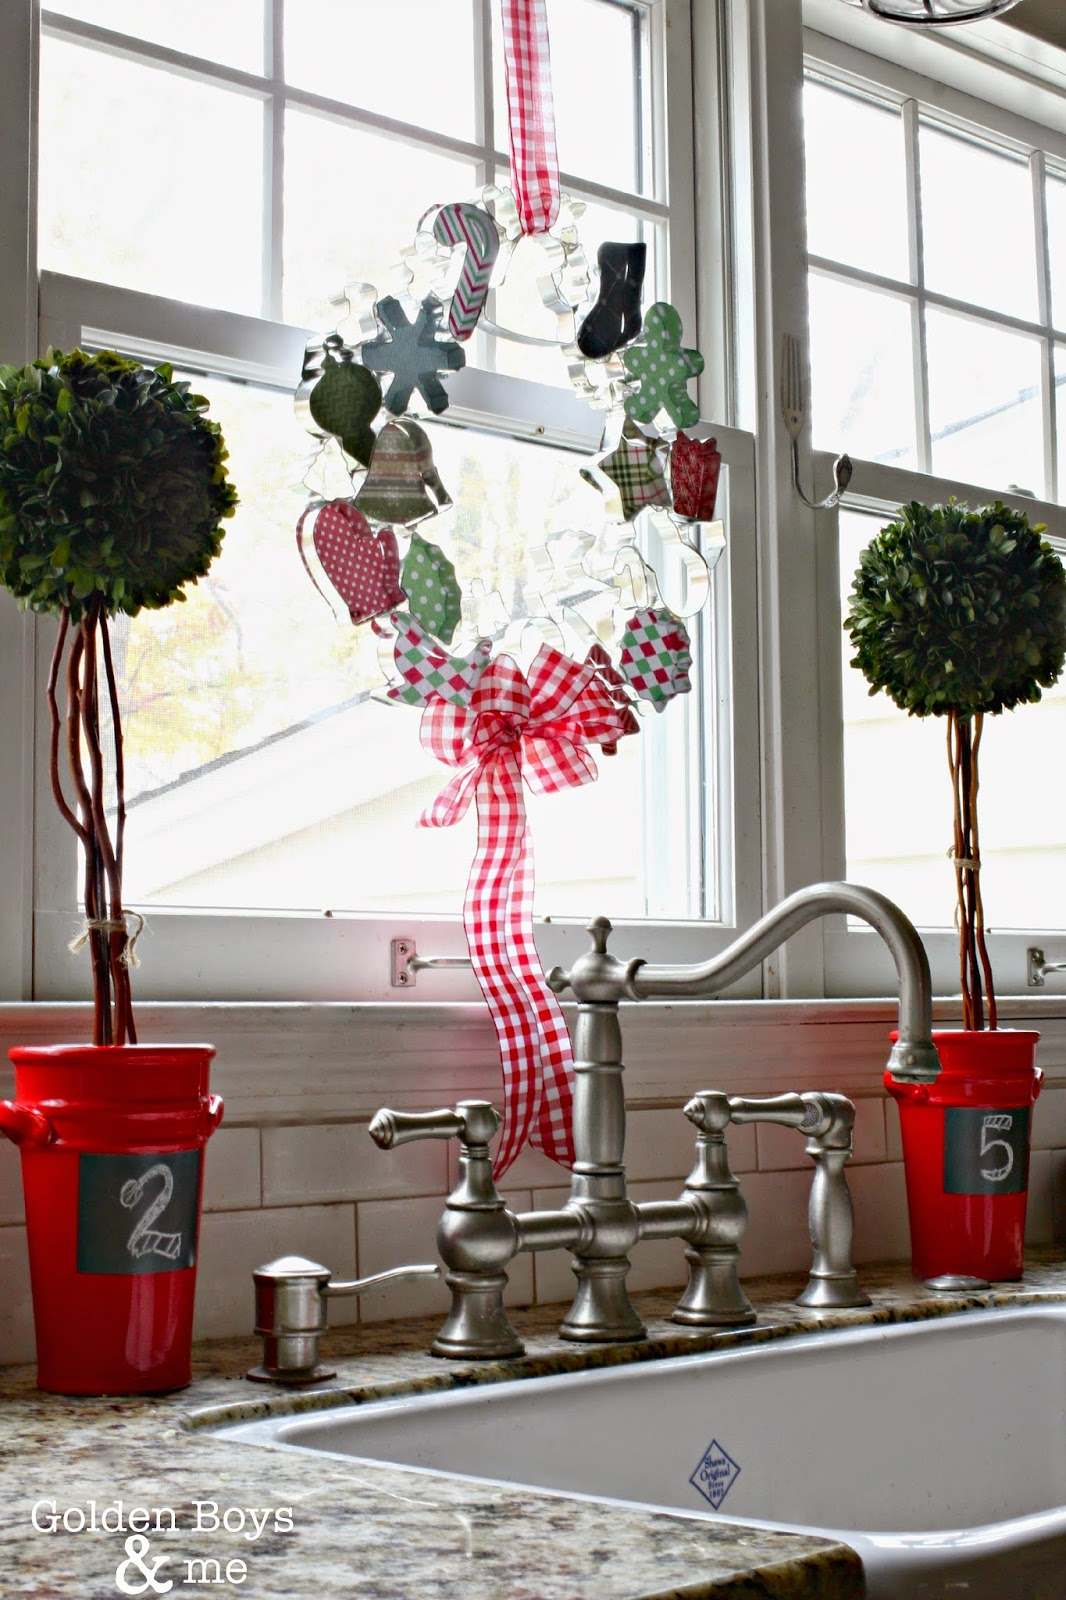 Cookie Cutter wreath over sink in Christmas decor with preserved boxwood topiaries-www.goldenboysandme.com